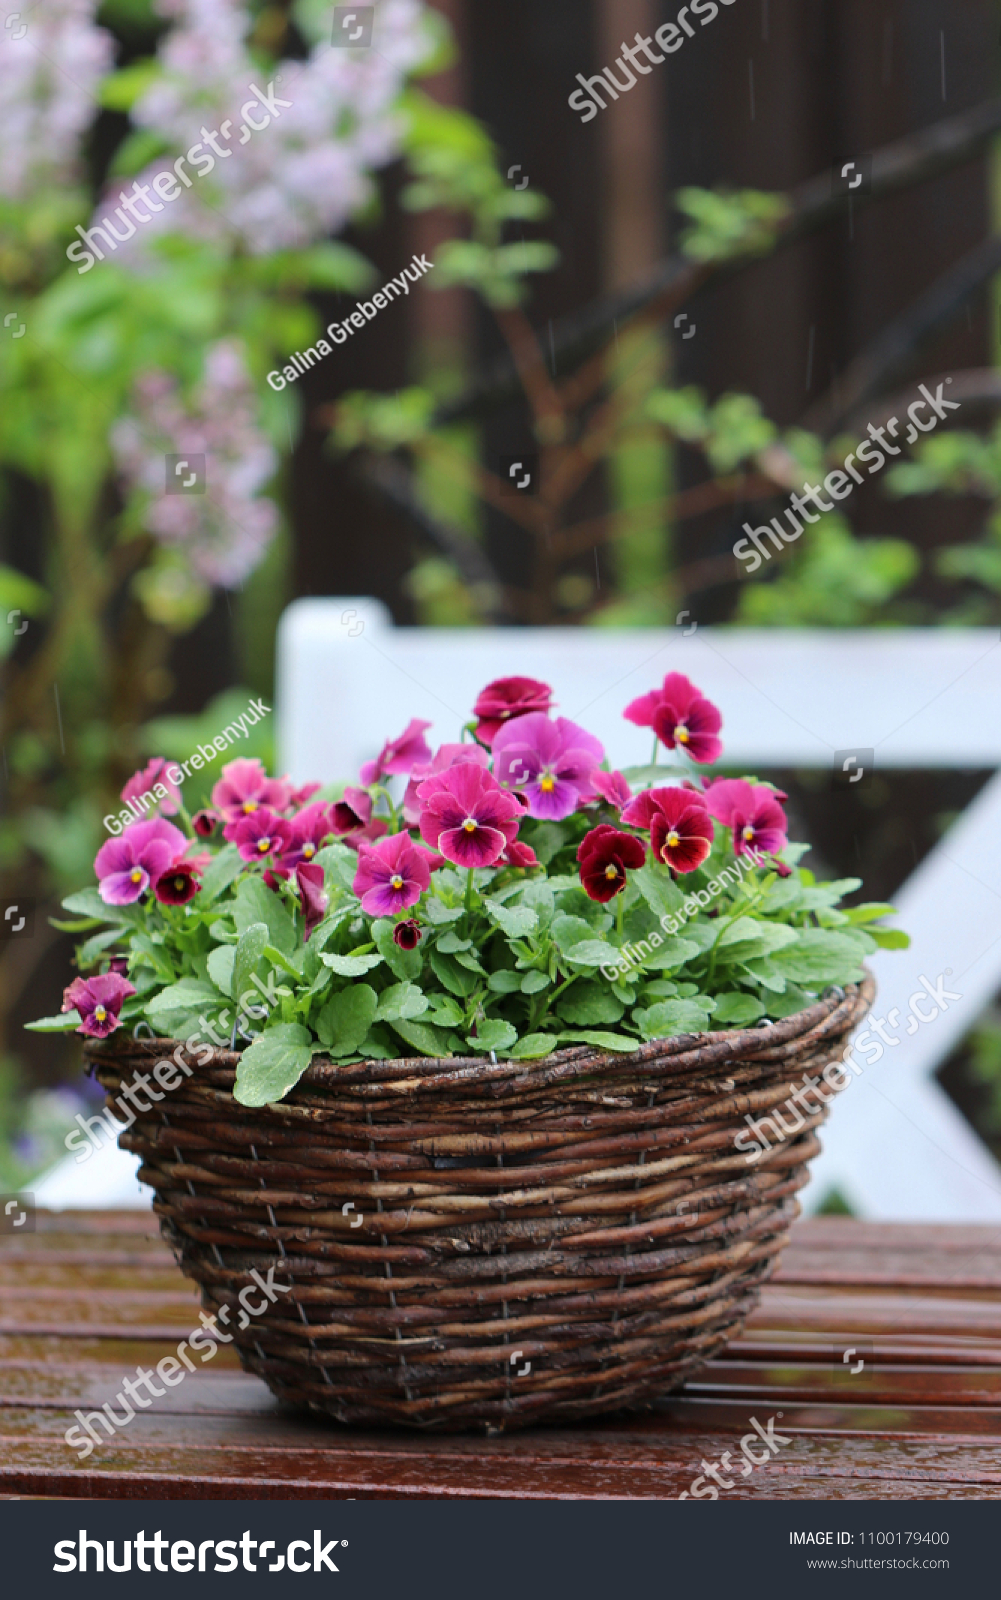 Floral Composition Flowers Vintage Wicker Basket Stock Photo Edit